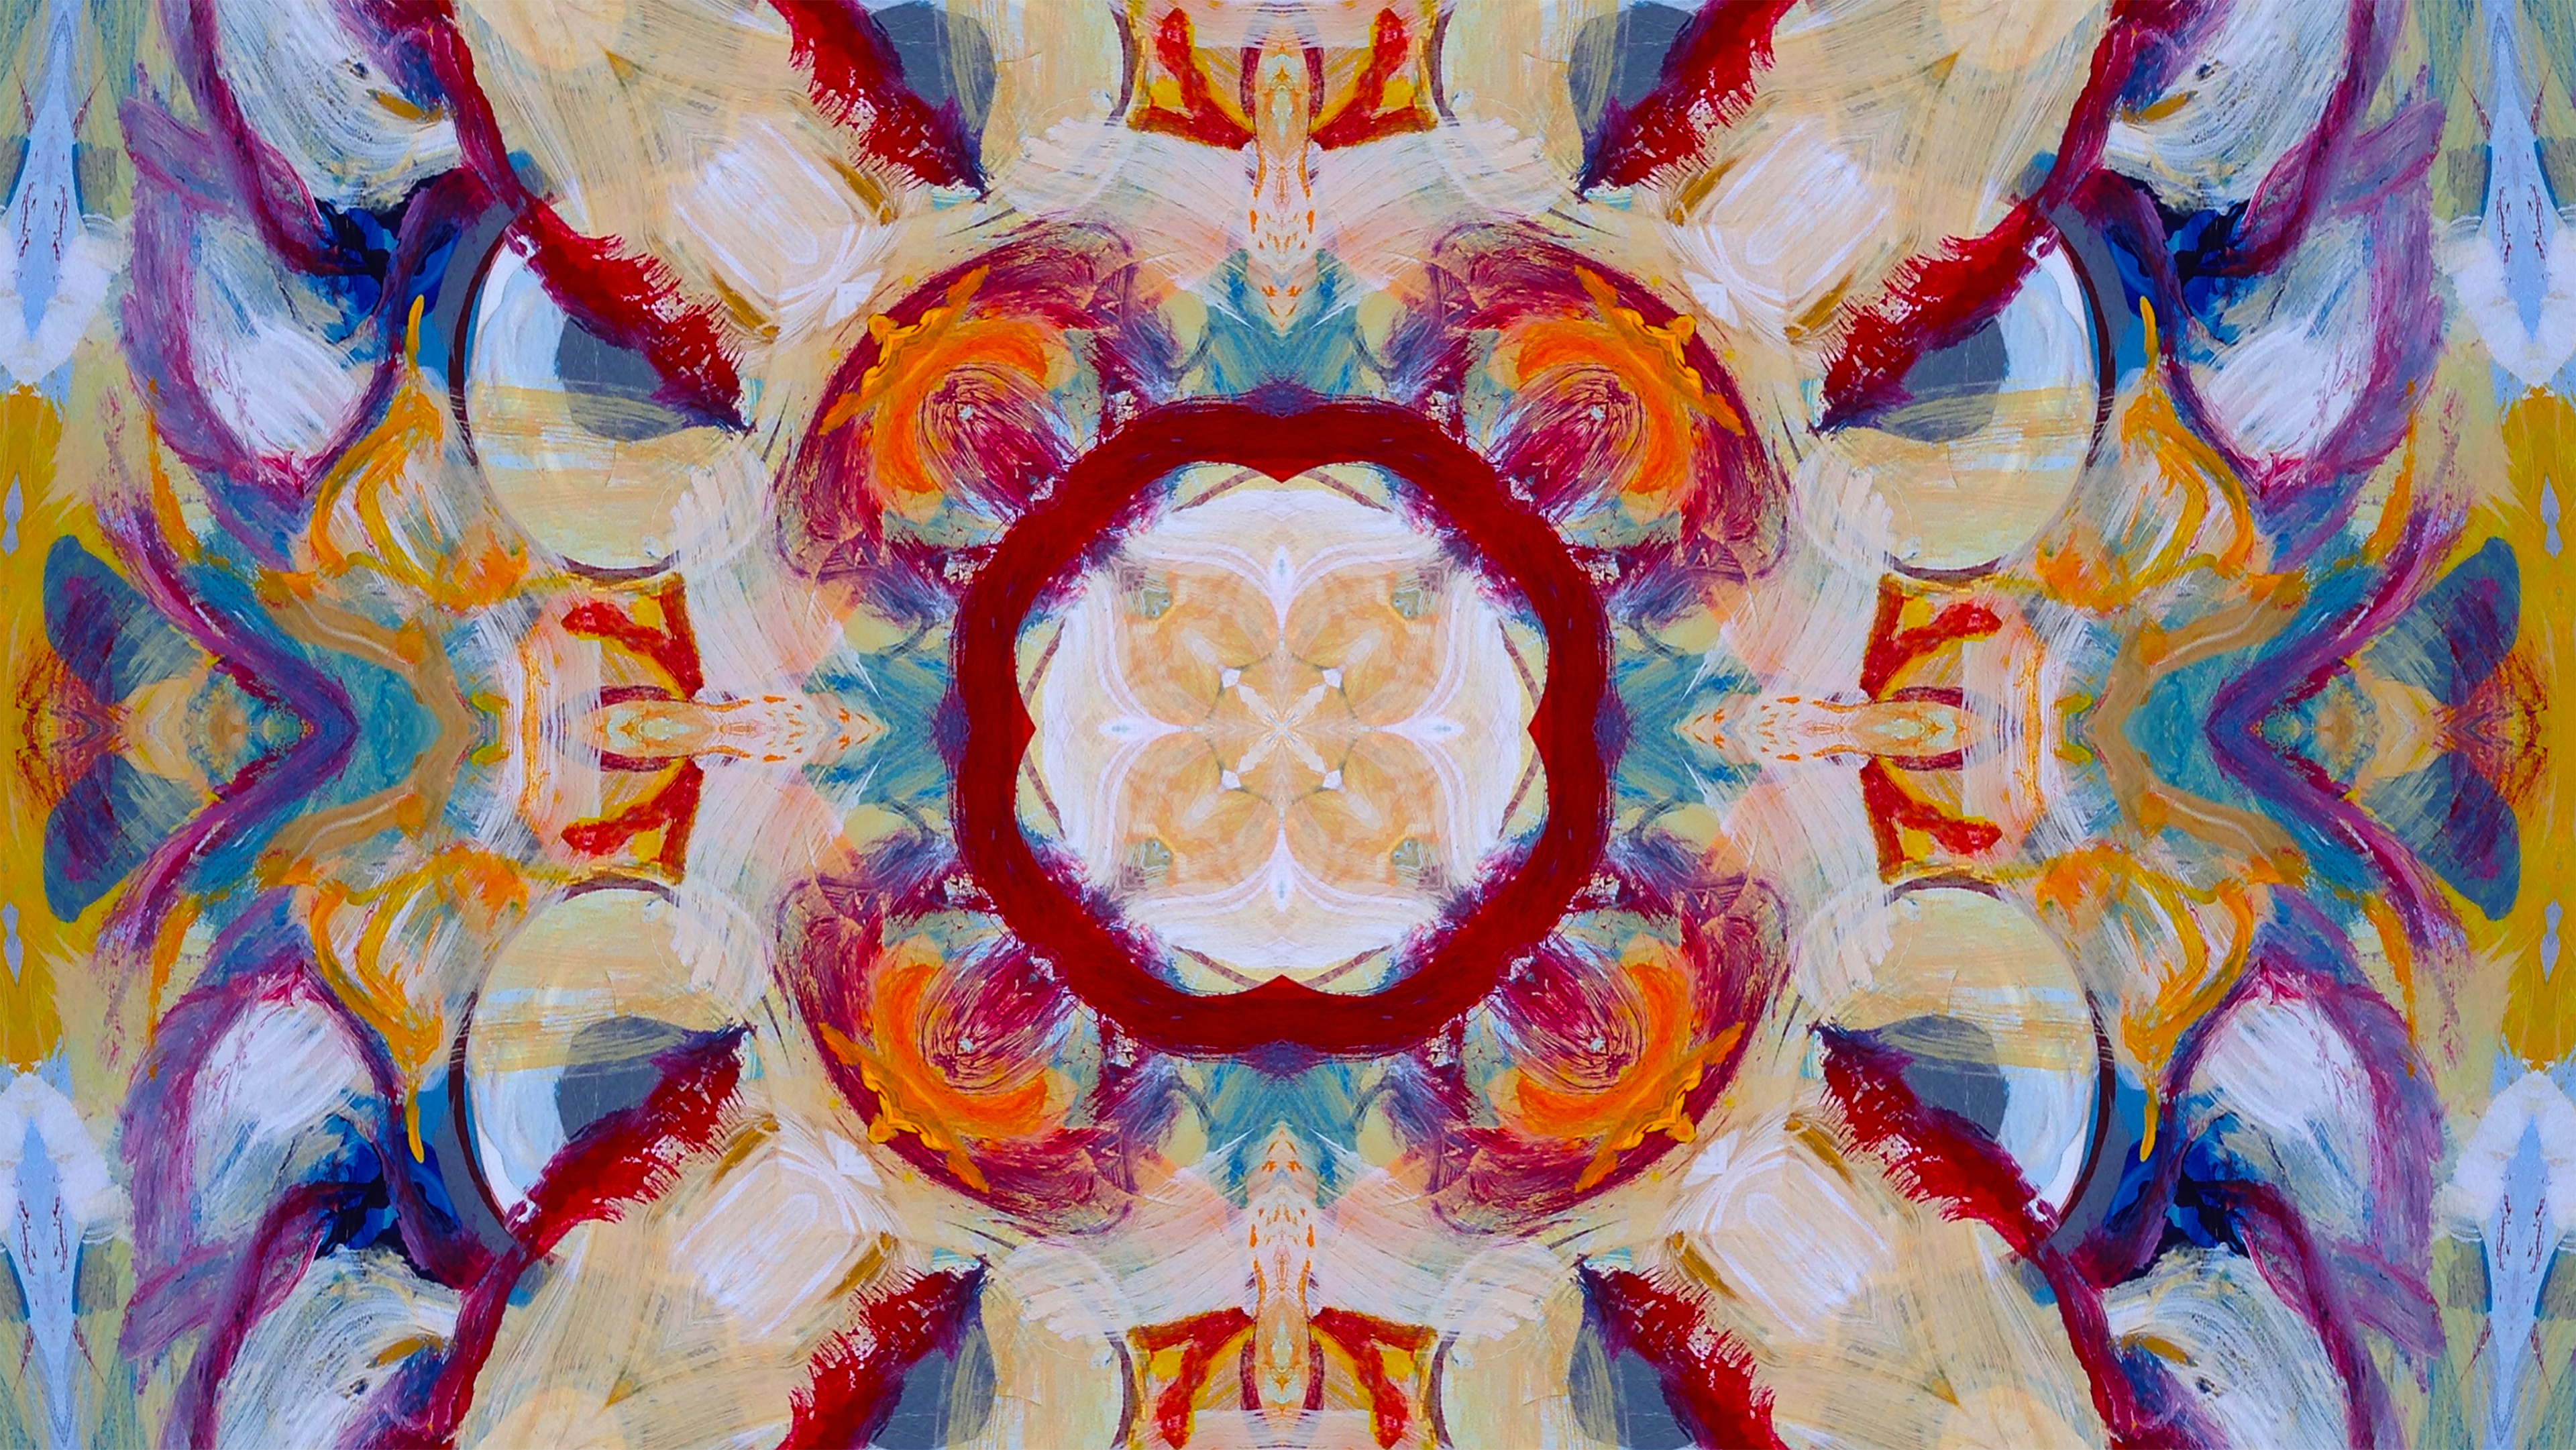 mandala print detail from a 4k video prepared for viewing using the Depict system. http://depict.com